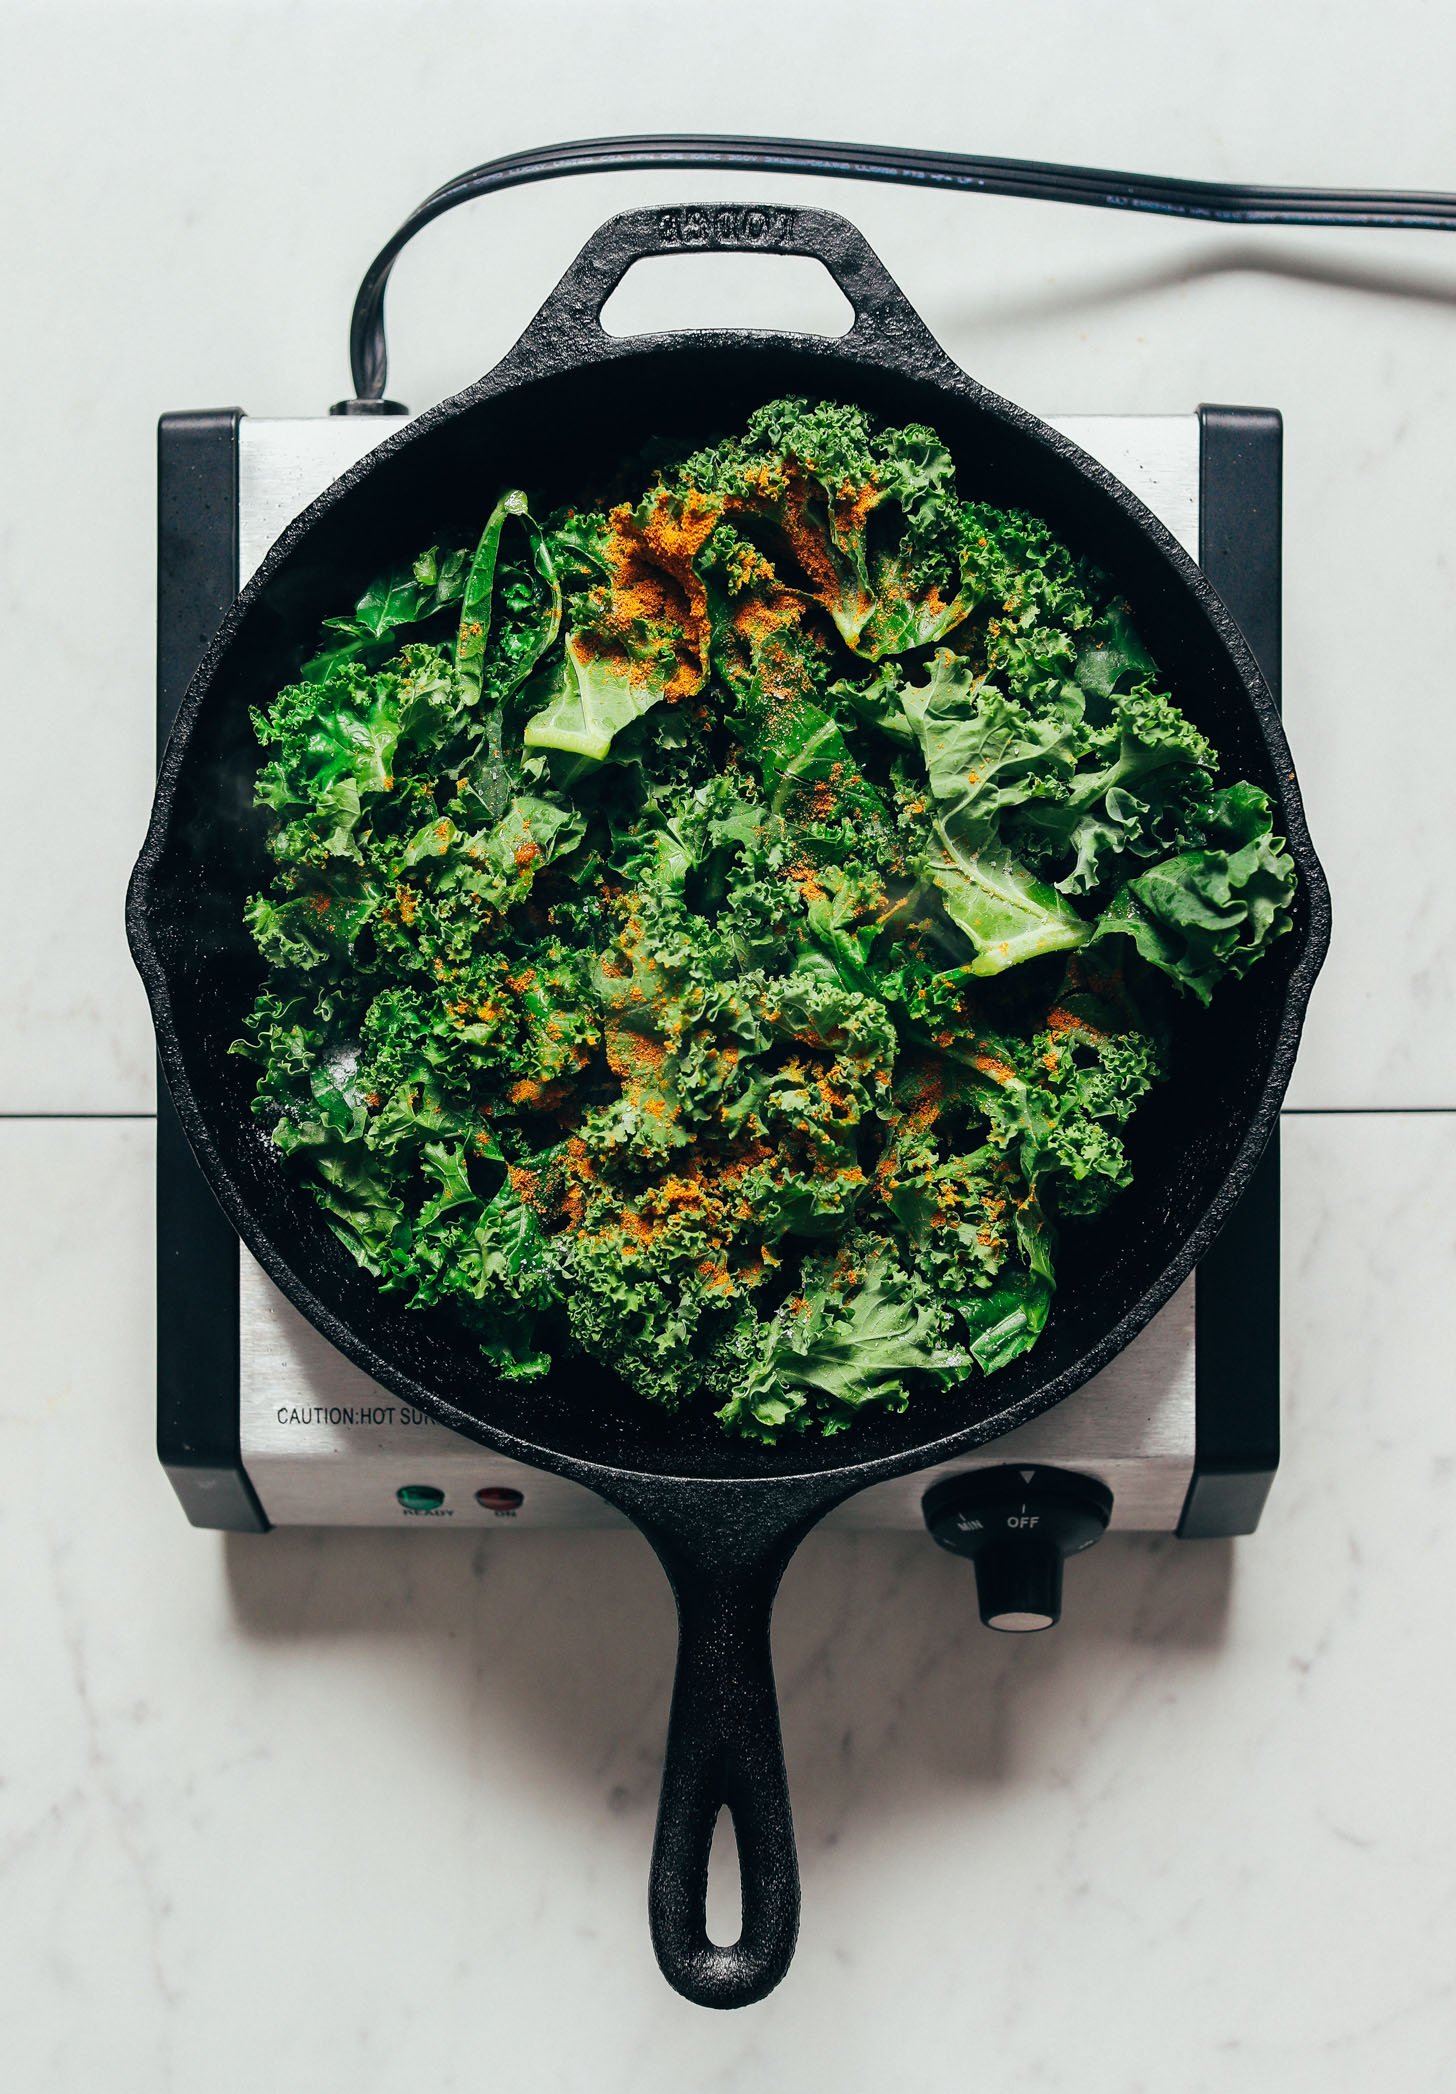 Skillet filled with kale and sprinkled with curry powder